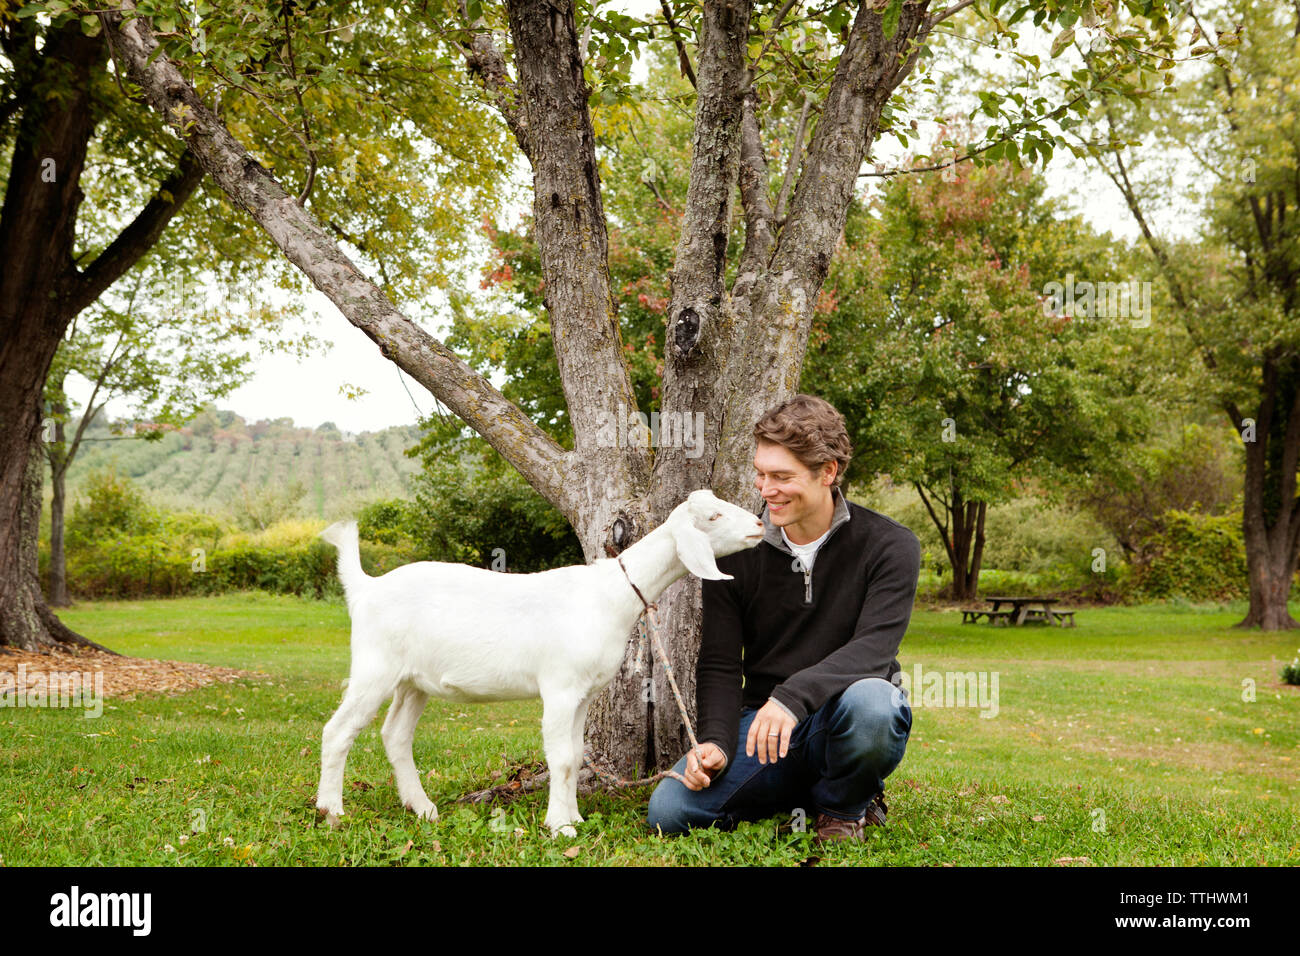 Happy man with goat on grassy field - Stock Image